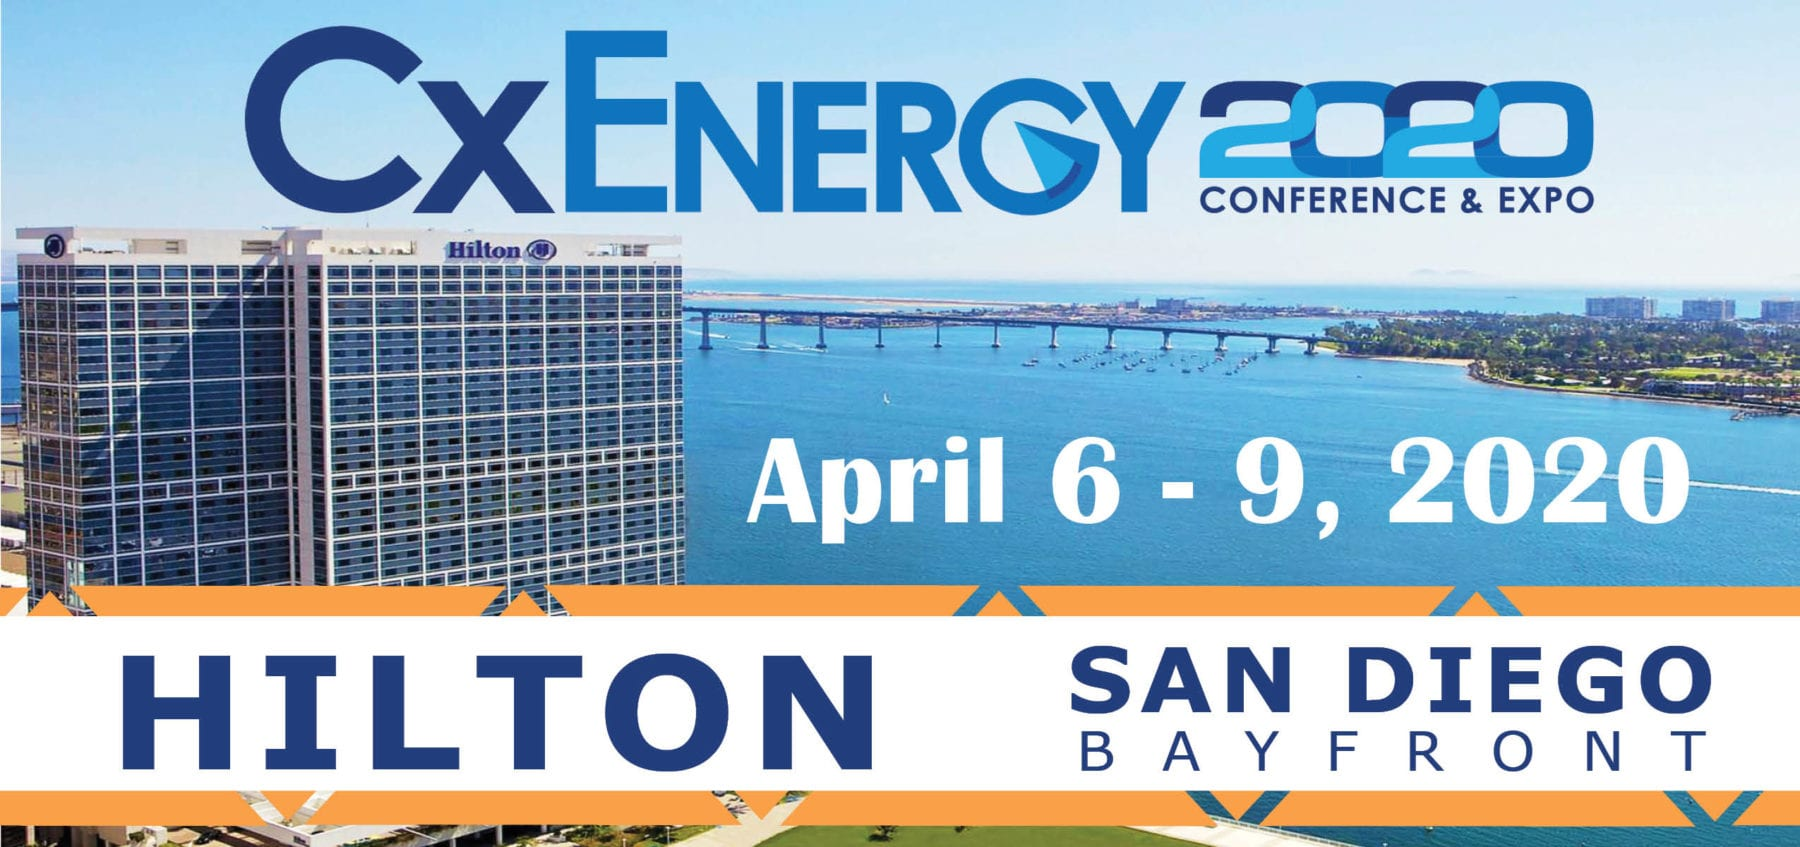 Save The Date For Cxenergy 2020 Conference Expo April 6